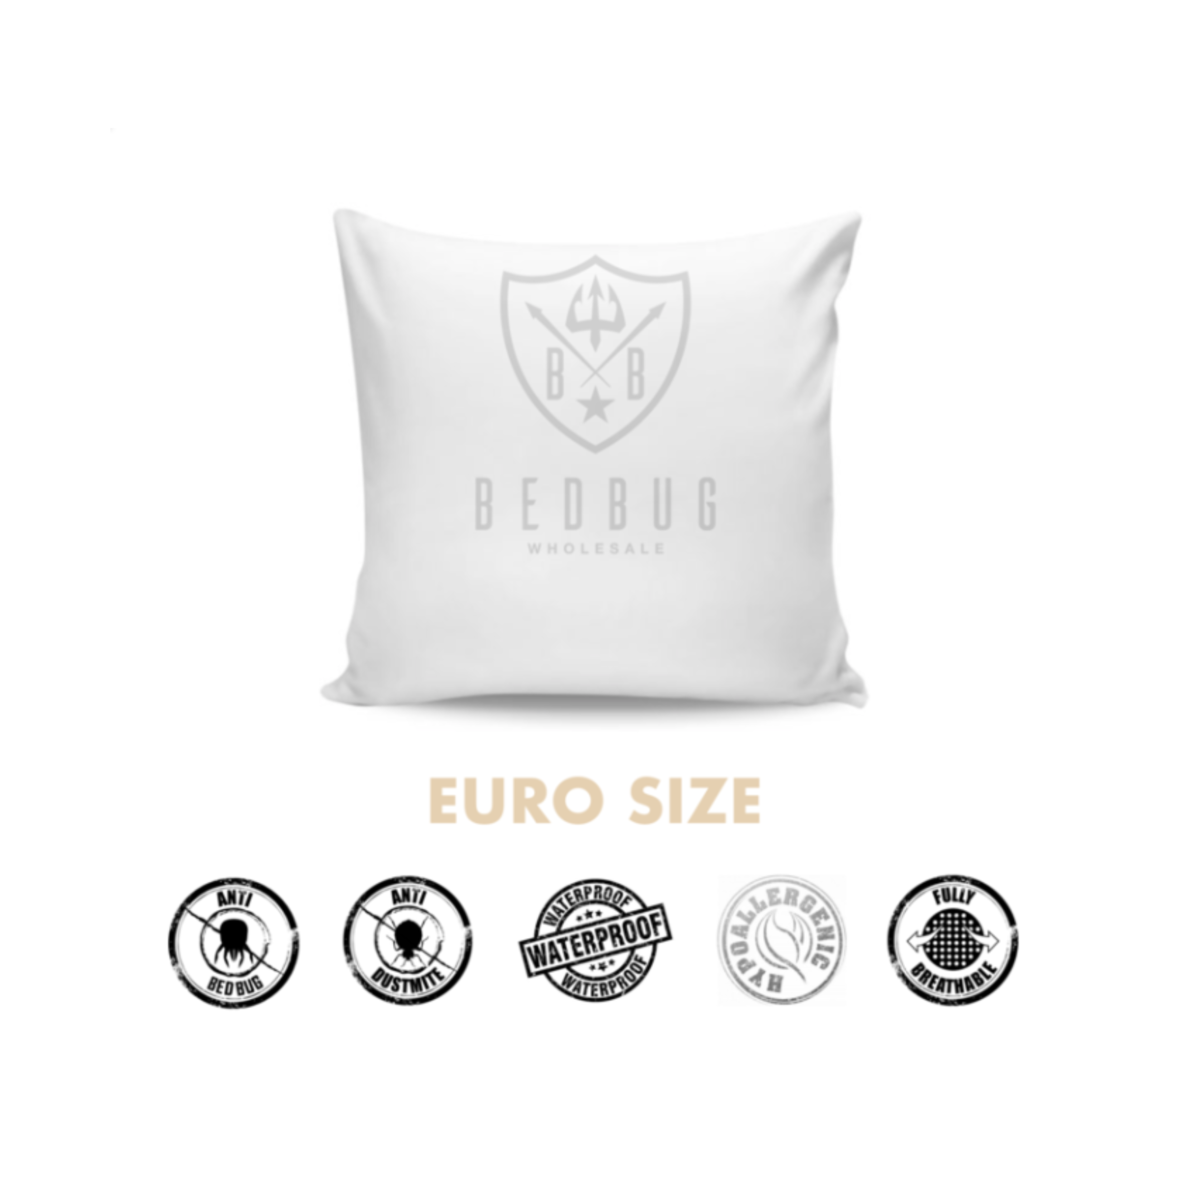 Euro Size Pillow Cover Dust Mite and Allergy